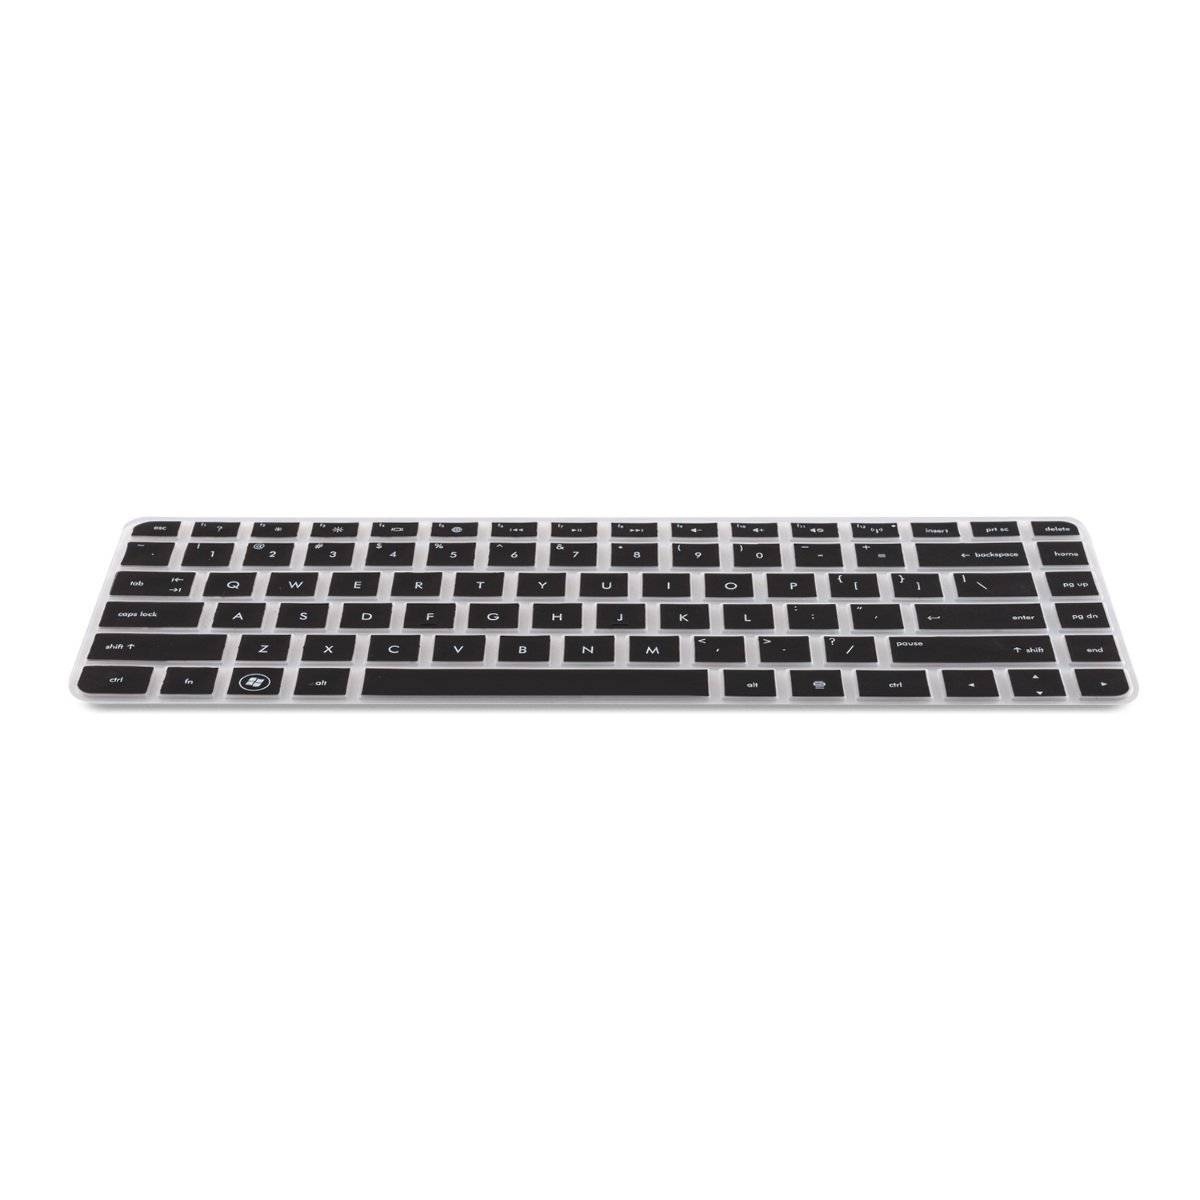 US kwmobile Rugged ultra-thin Keyboard Protector QWERTY Silicone for Asus Zenbook in Black effective protection from dirt